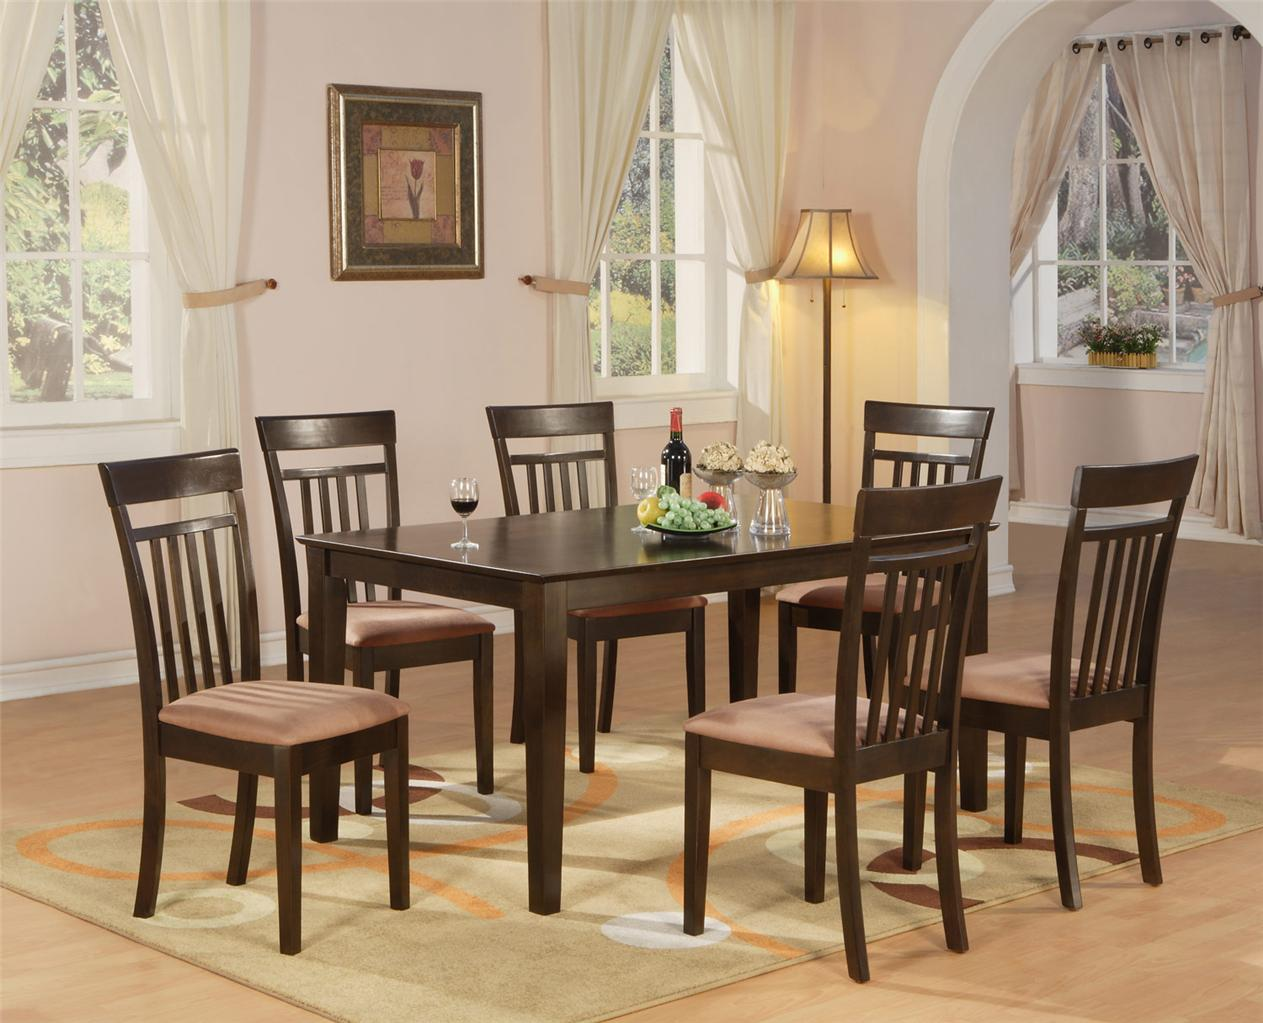 7 pc dining room dinette kitchen set table and 6 chairs ebay for Dining set with bench and chairs